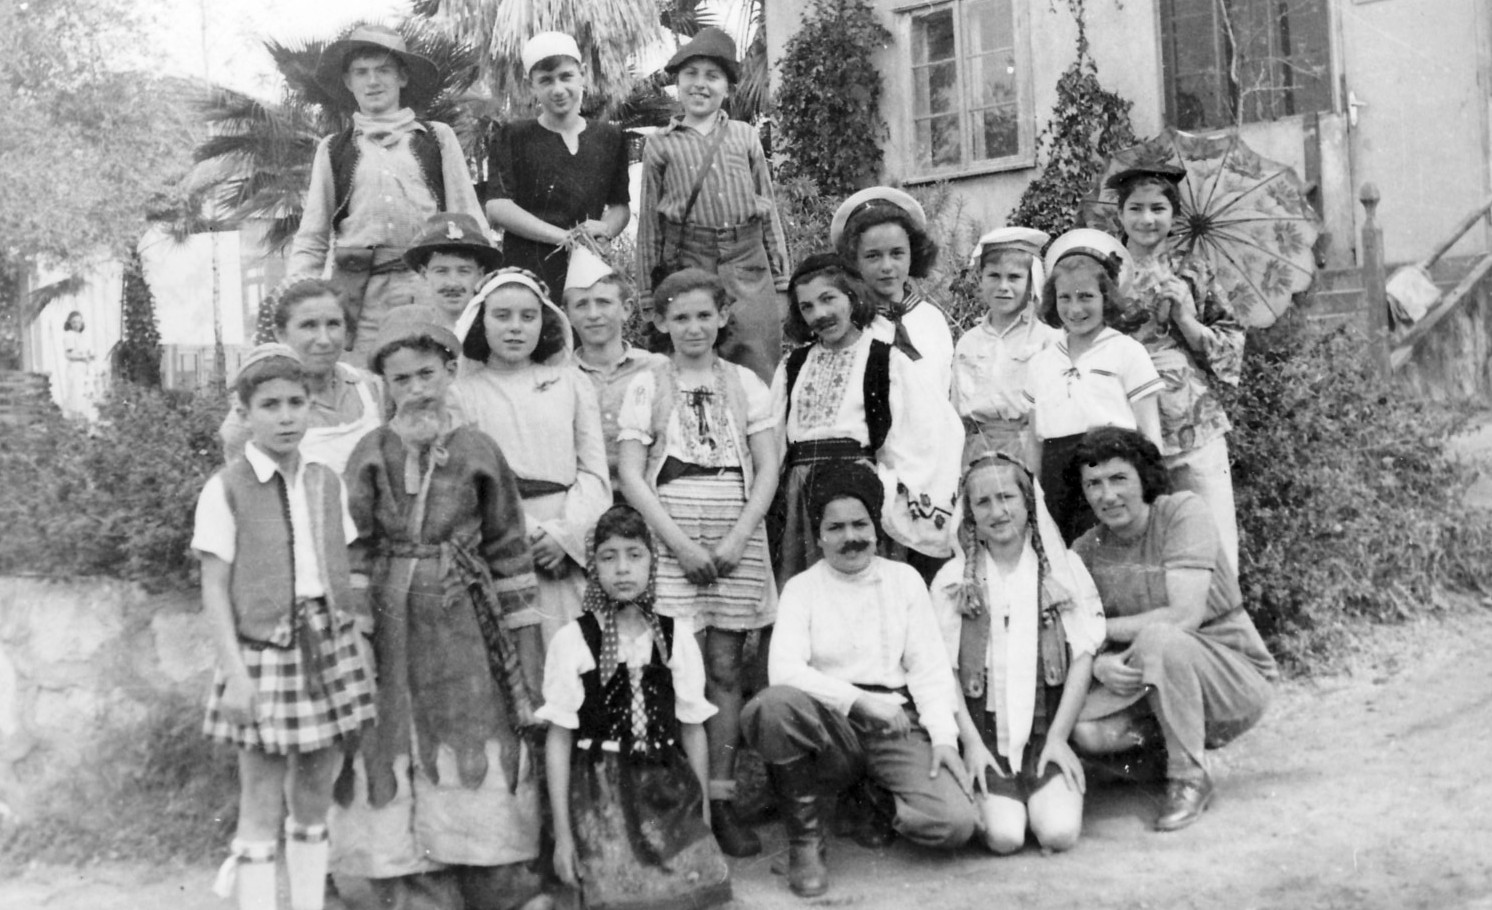 http://upload.wikimedia.org/wikipedia/commons/a/a9/PikiWiki_Israel_8502_Gan-Shmuel_-_Purim_with_children_in_1946.jpg